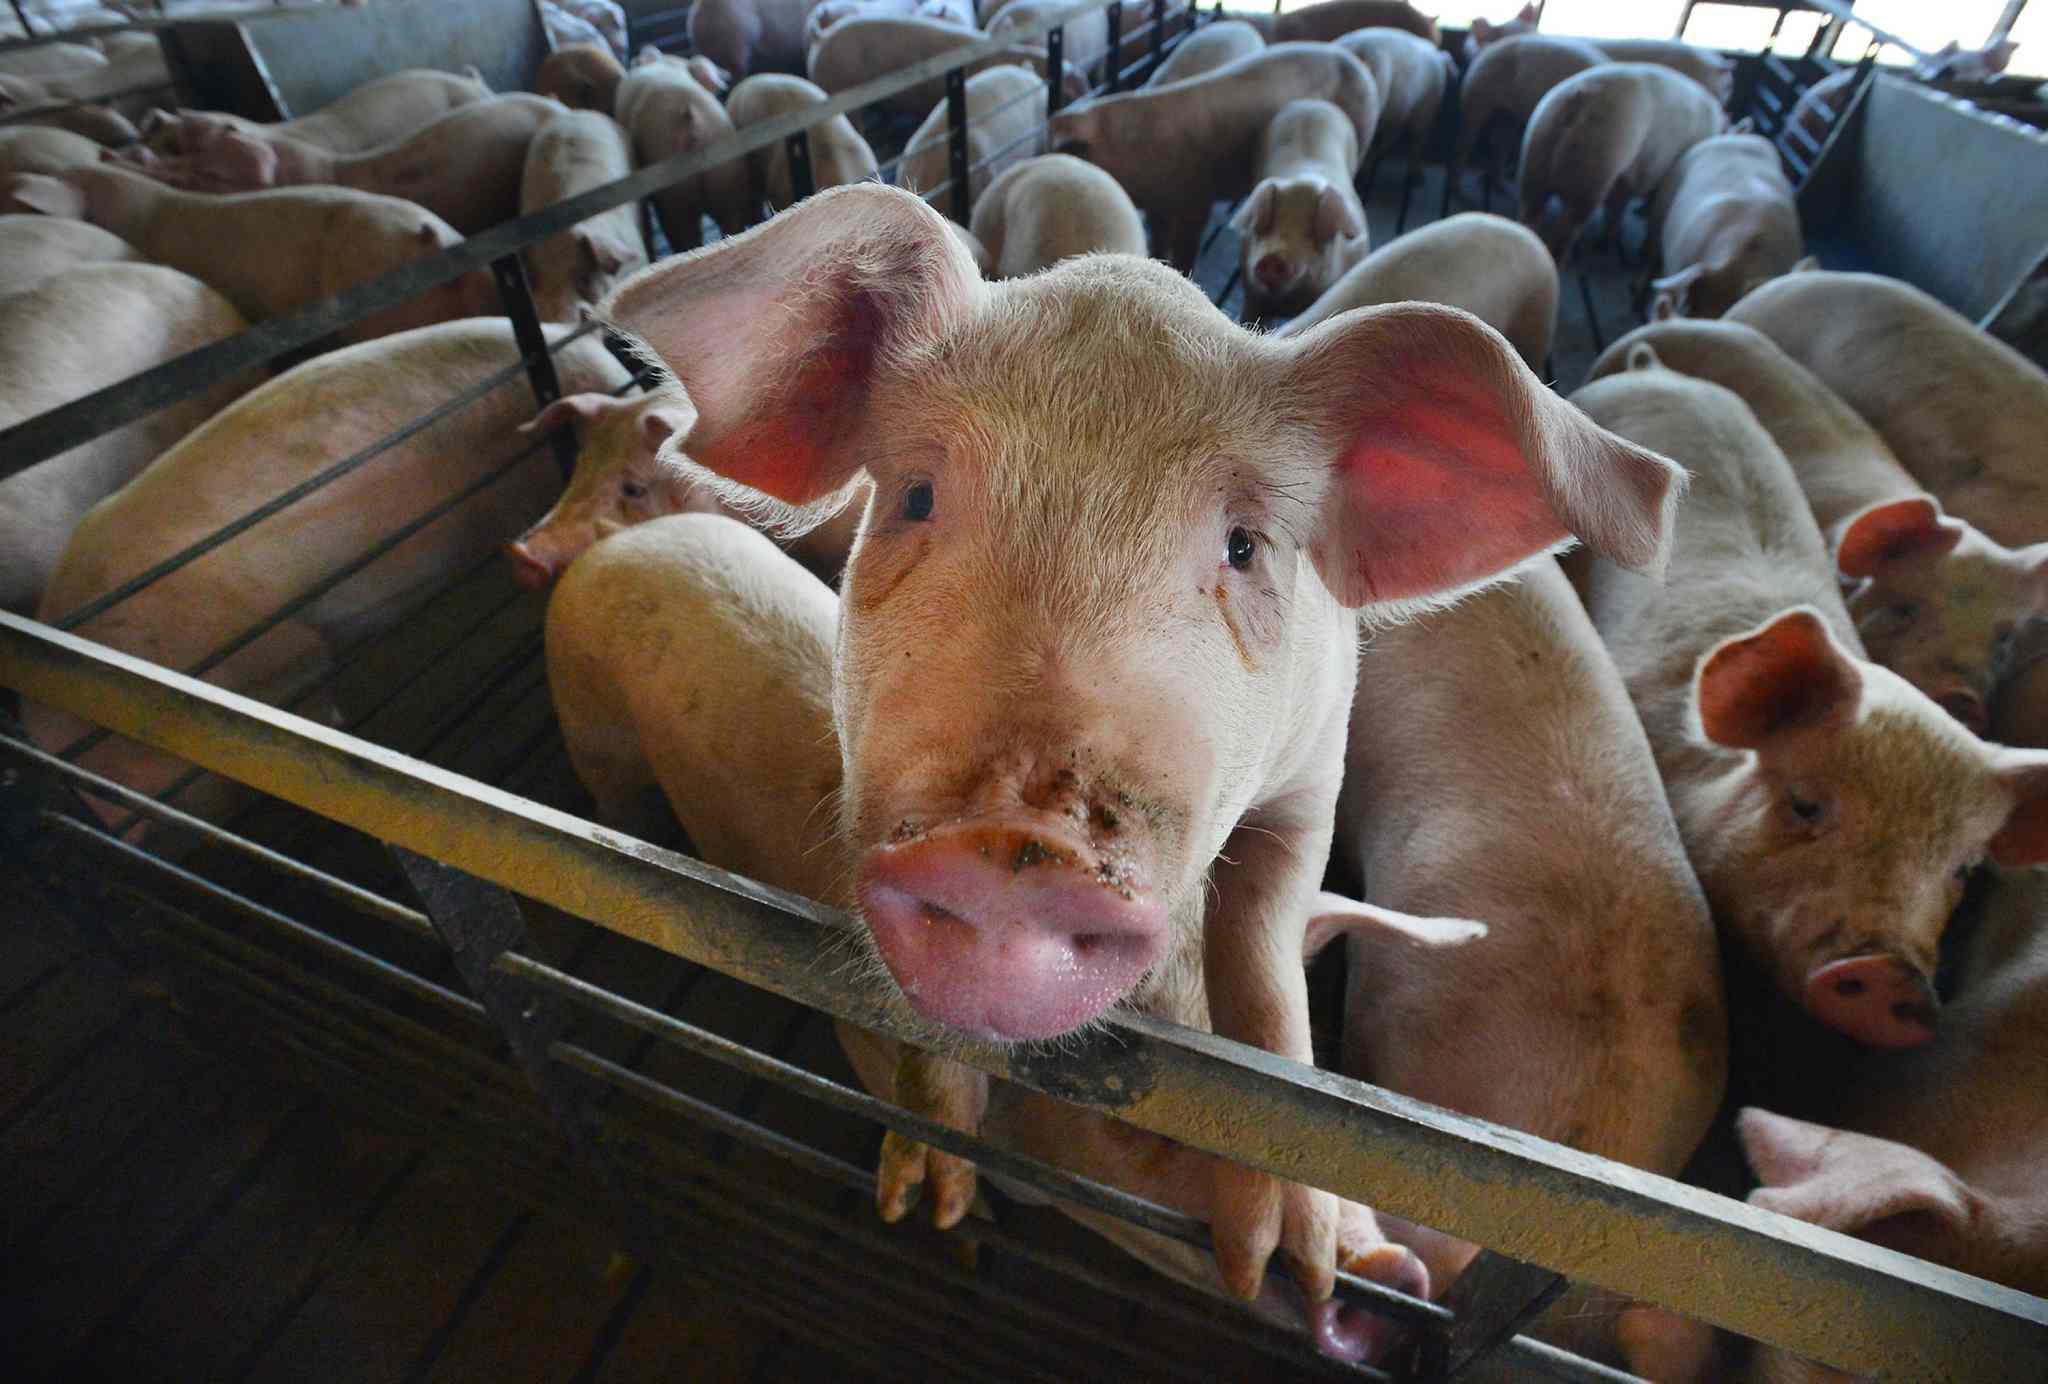 A curious pig looks at visitors to the barn on one of the Silky Pork farms in Duplin County.